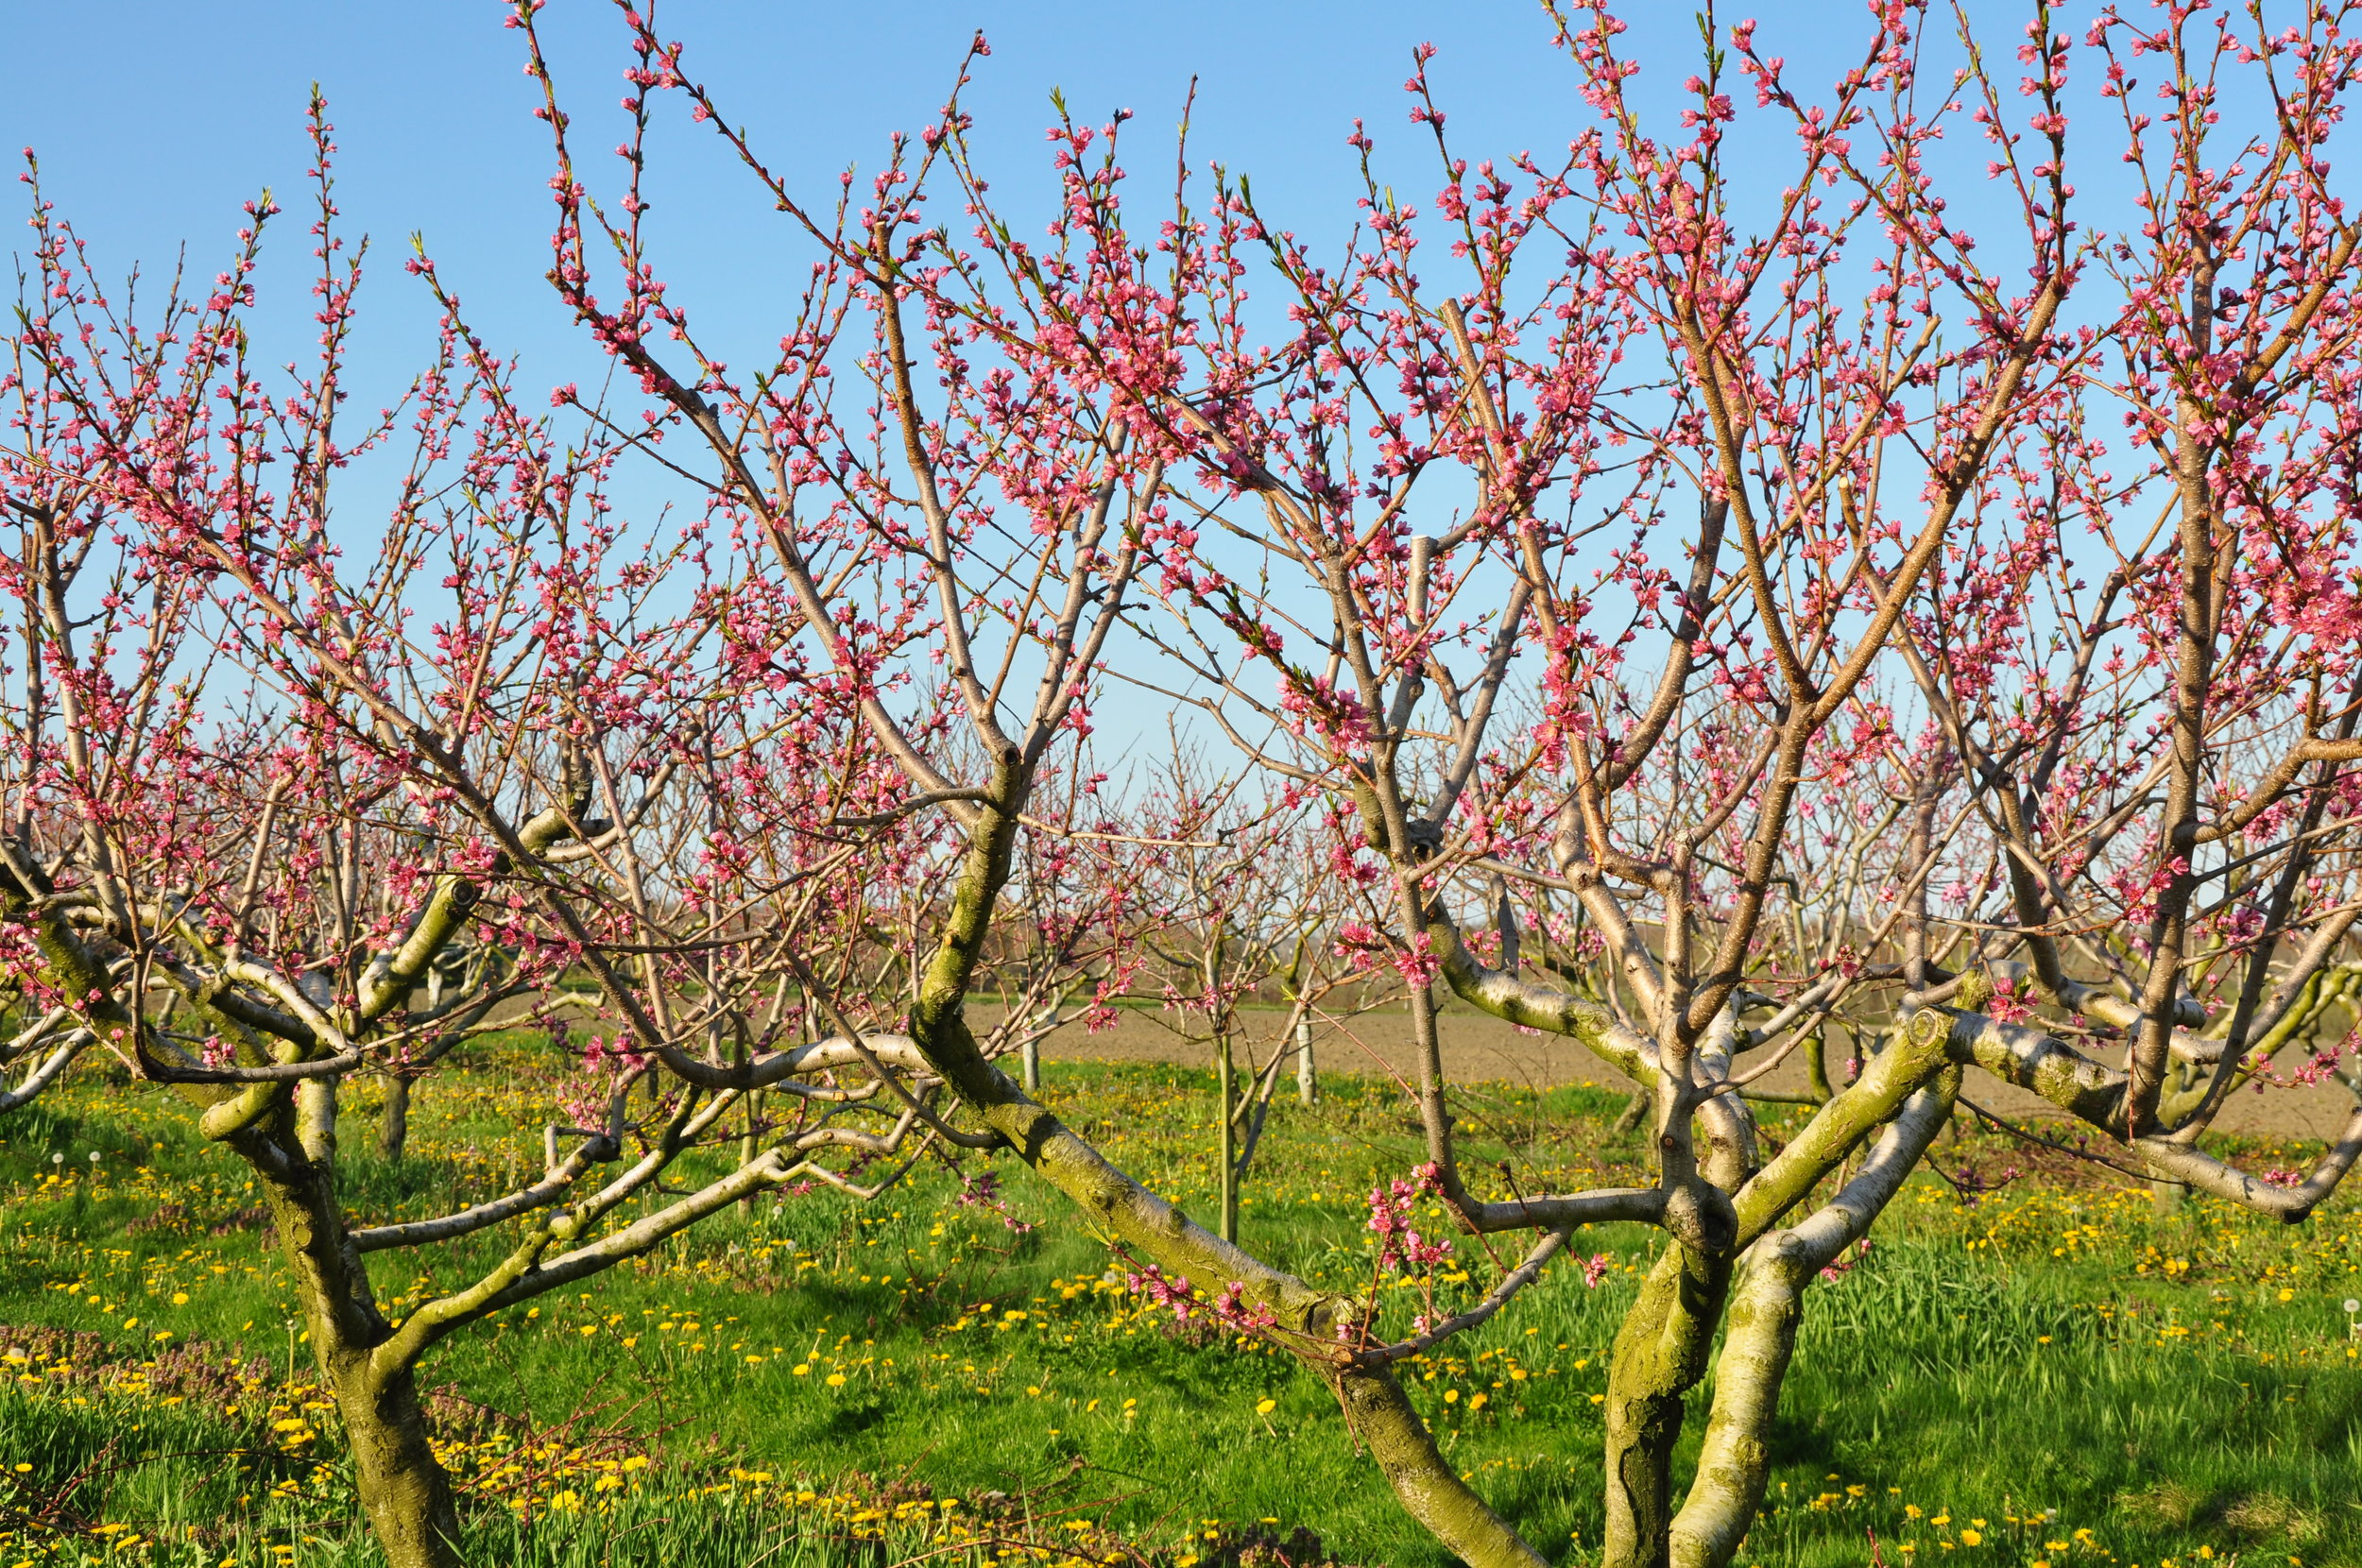 A view from Young Family Farm's blossoming peach trees.